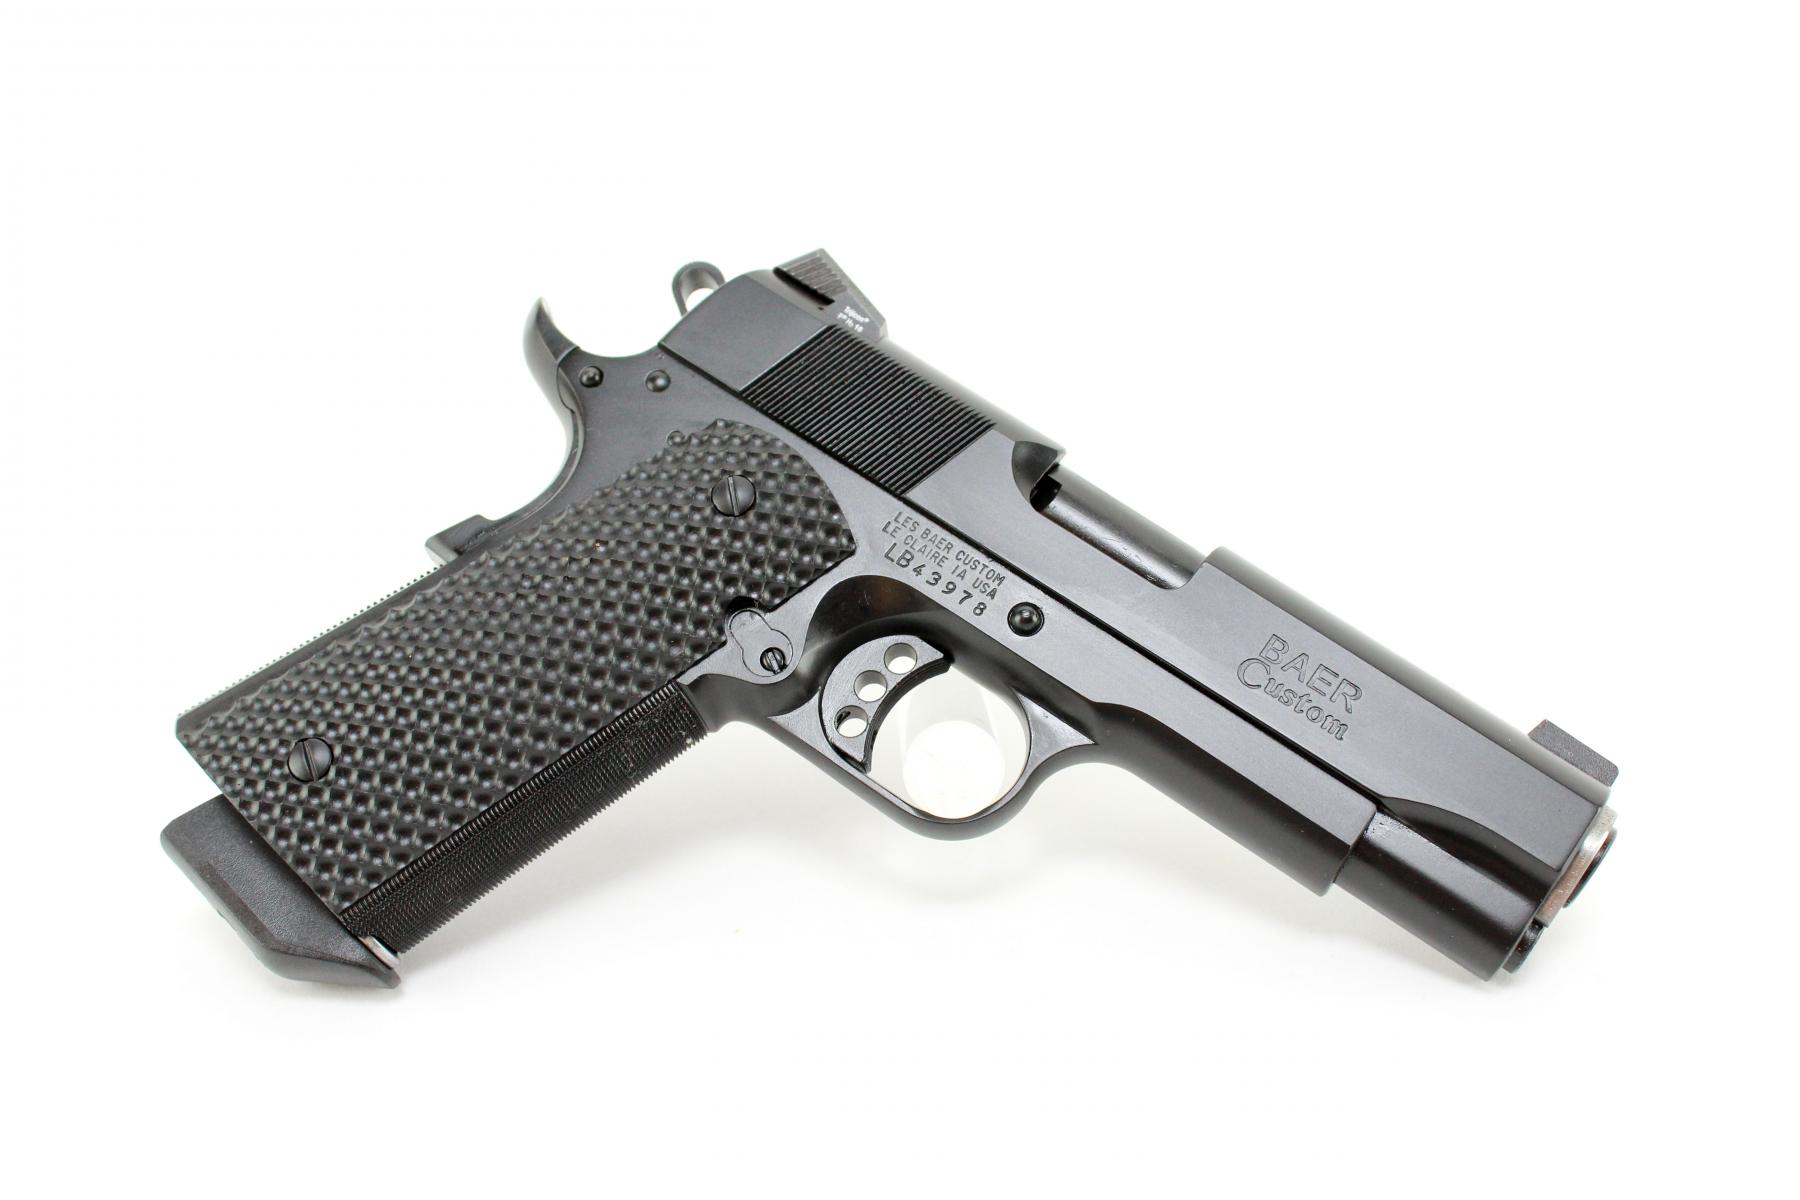 "Les Baer Black Bear Commanche |9mm 1911 4.25"" Barrel, Stainless Steel, Stinger Slide/ Commanche Frame, Extended Ambi Safety, Rounded Edges, G-10 Grips, 2 9-Round Magazines"